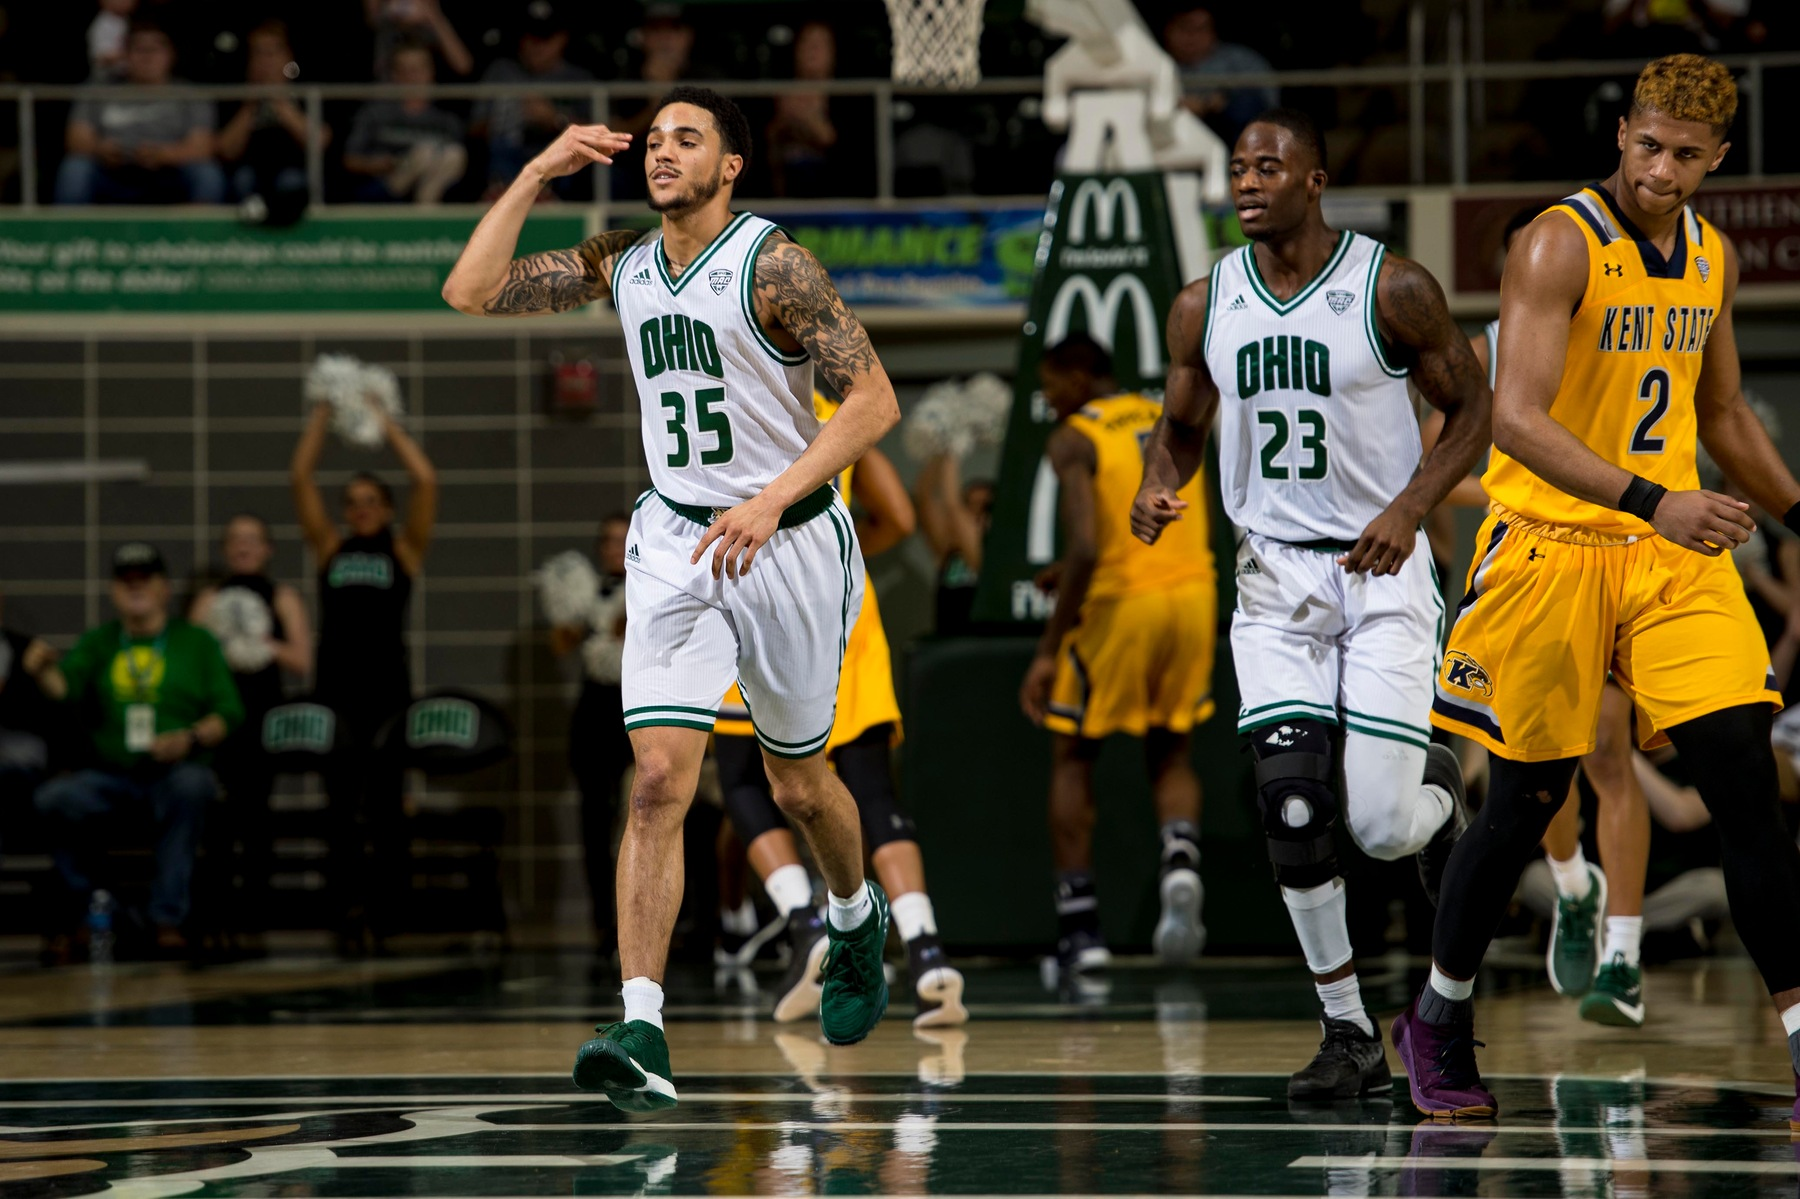 Ohio Men's Basketball Beats Kent State With Balanced Attack